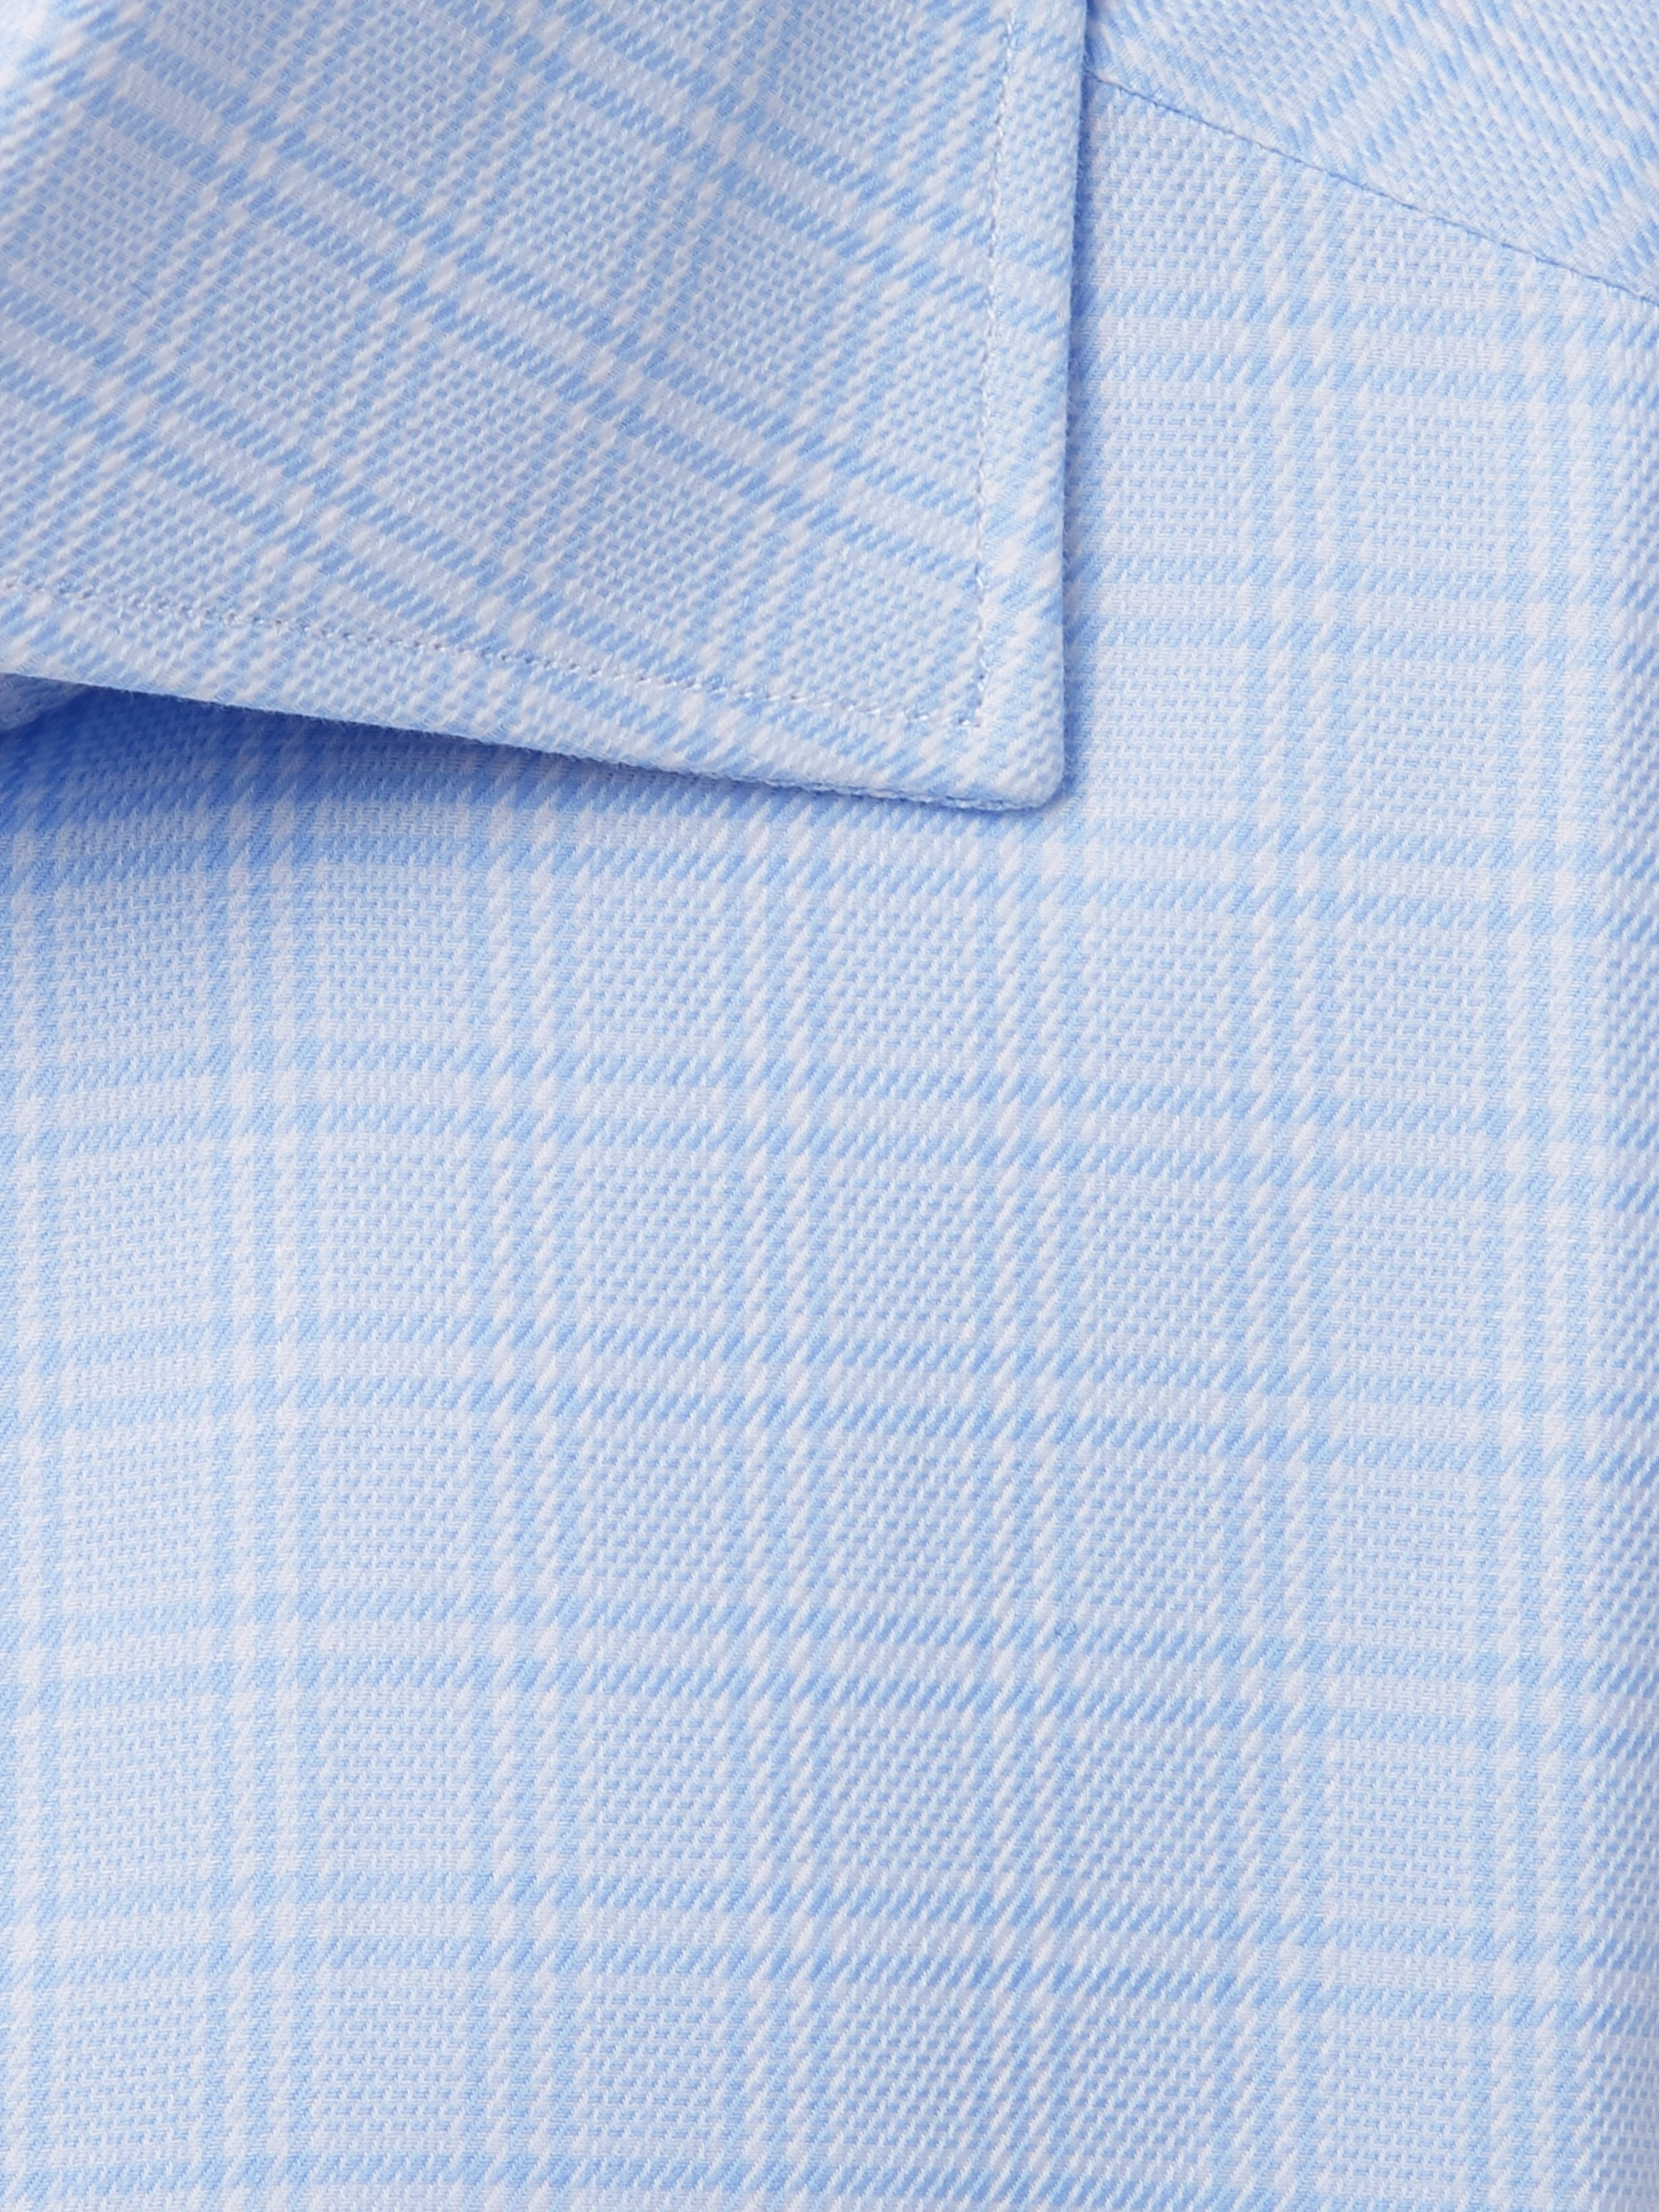 Ermenegildo Zegna Light-Blue Cutaway-Collar Prince of Wales Checked Cotton Shirt